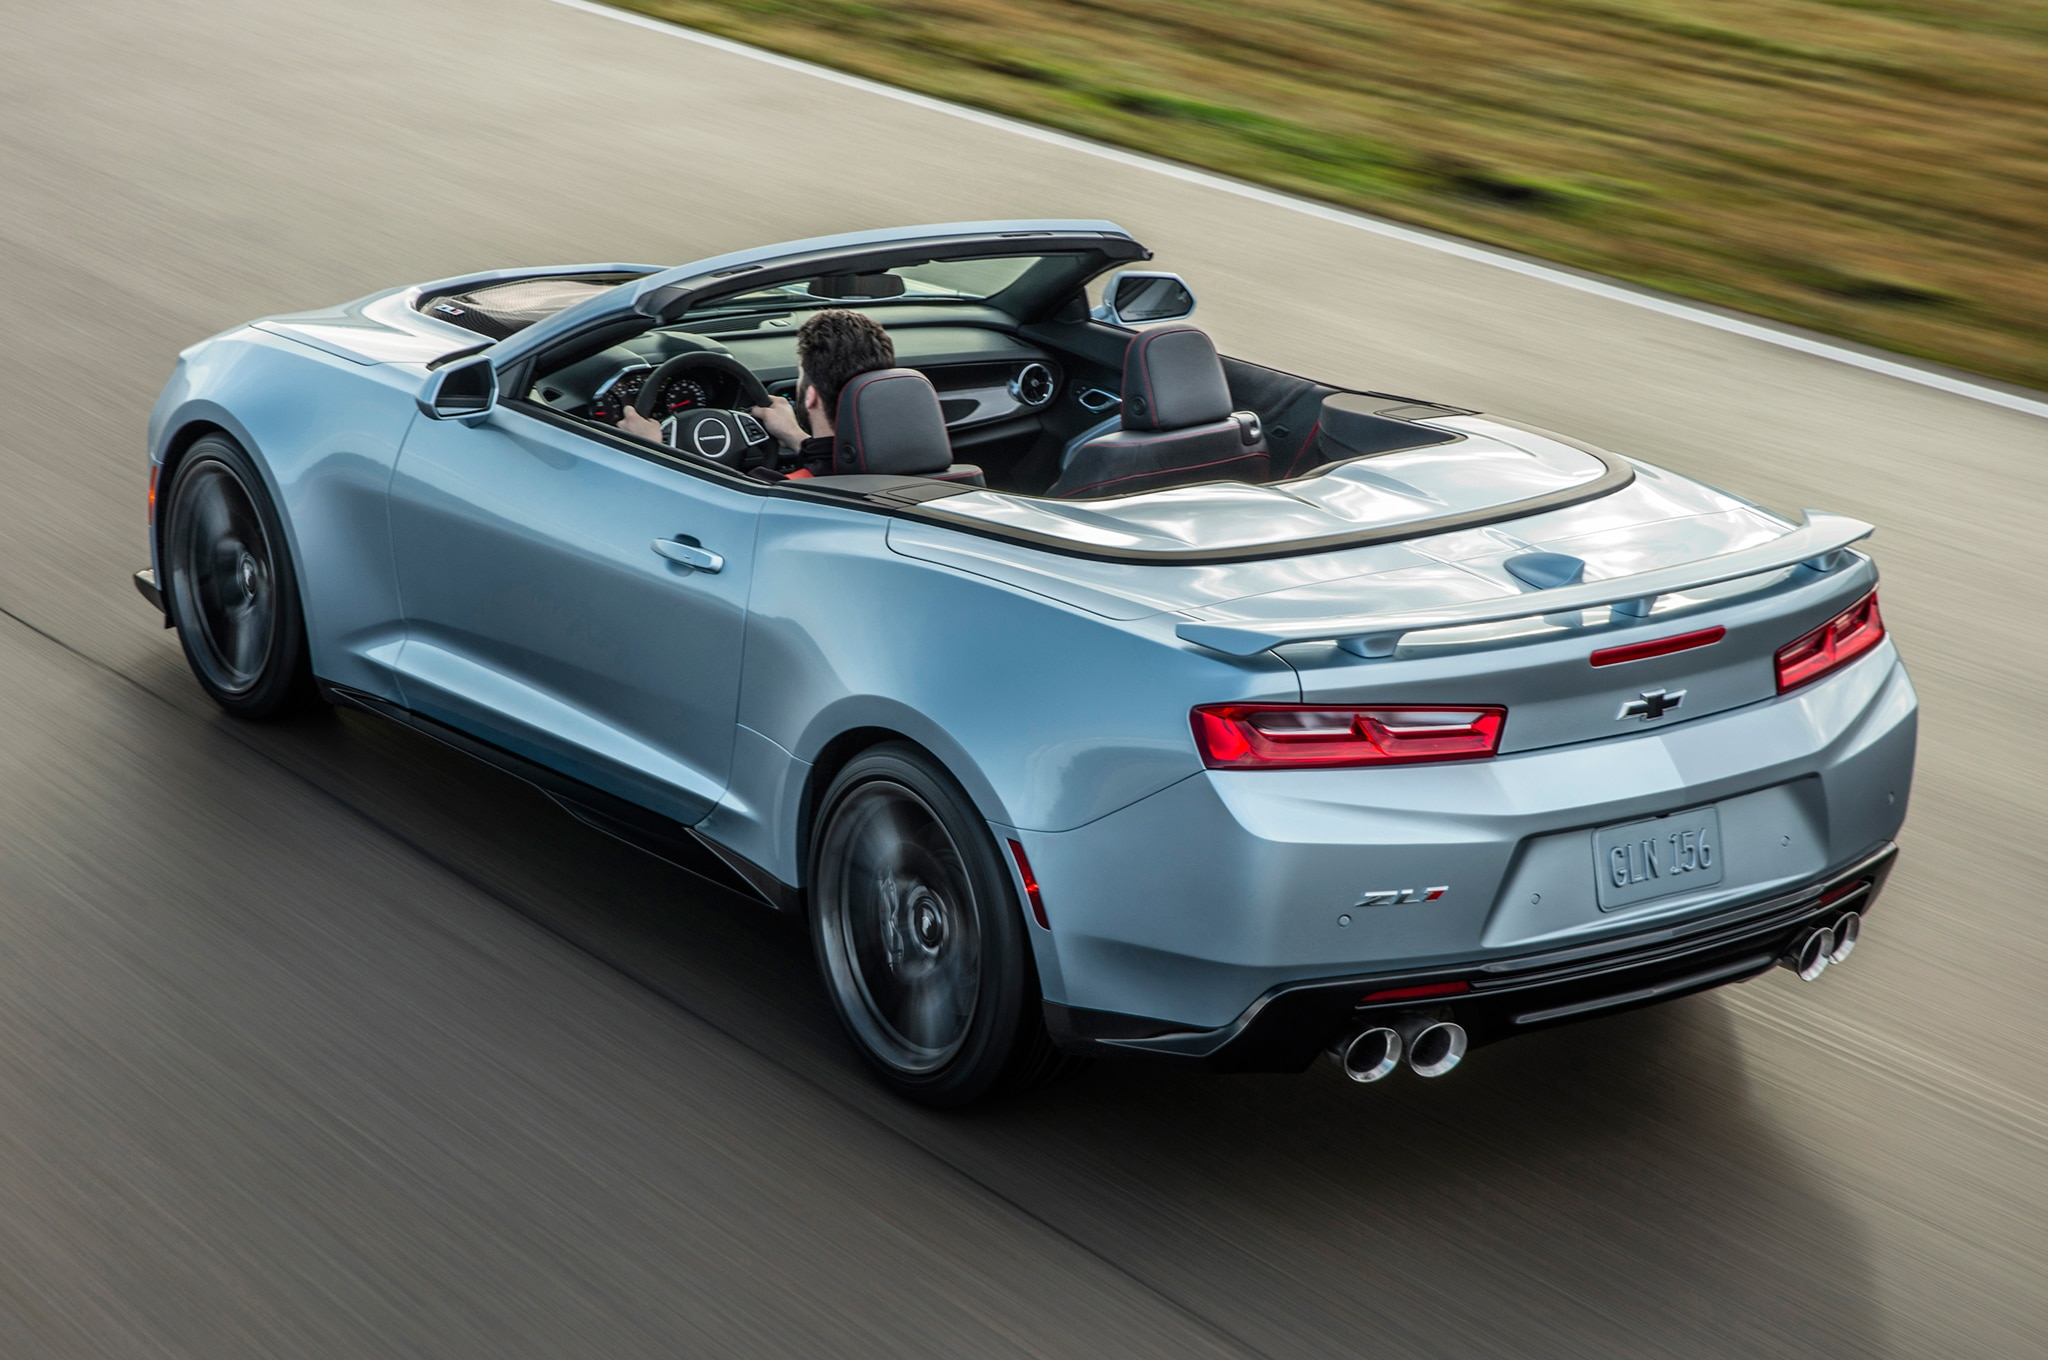 2017 chevrolet camaro zl1 convertible debuts at new york show. Black Bedroom Furniture Sets. Home Design Ideas